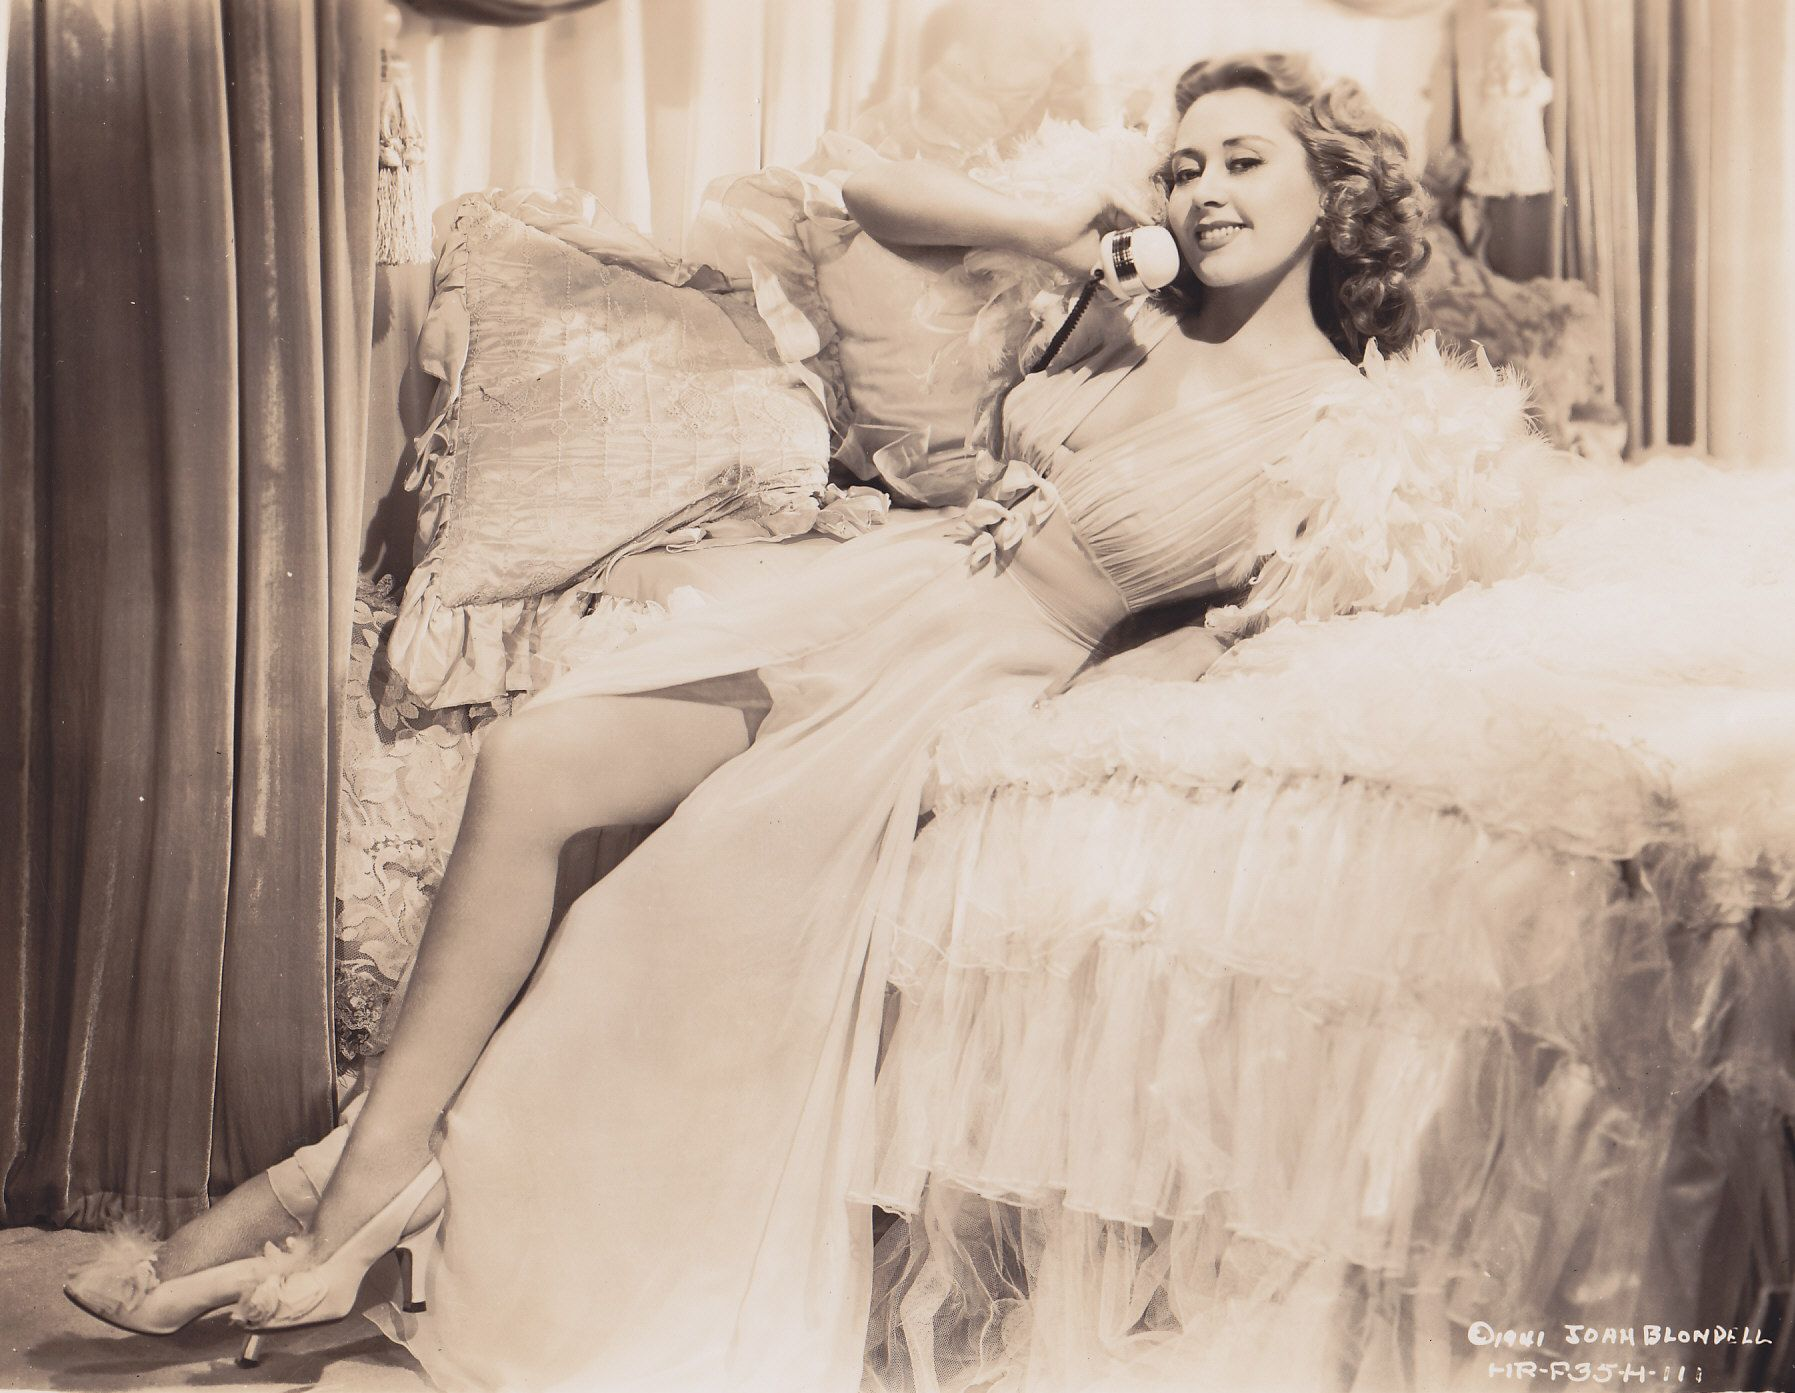 1000+ images about Classic Hollywood - Joan Blondell on